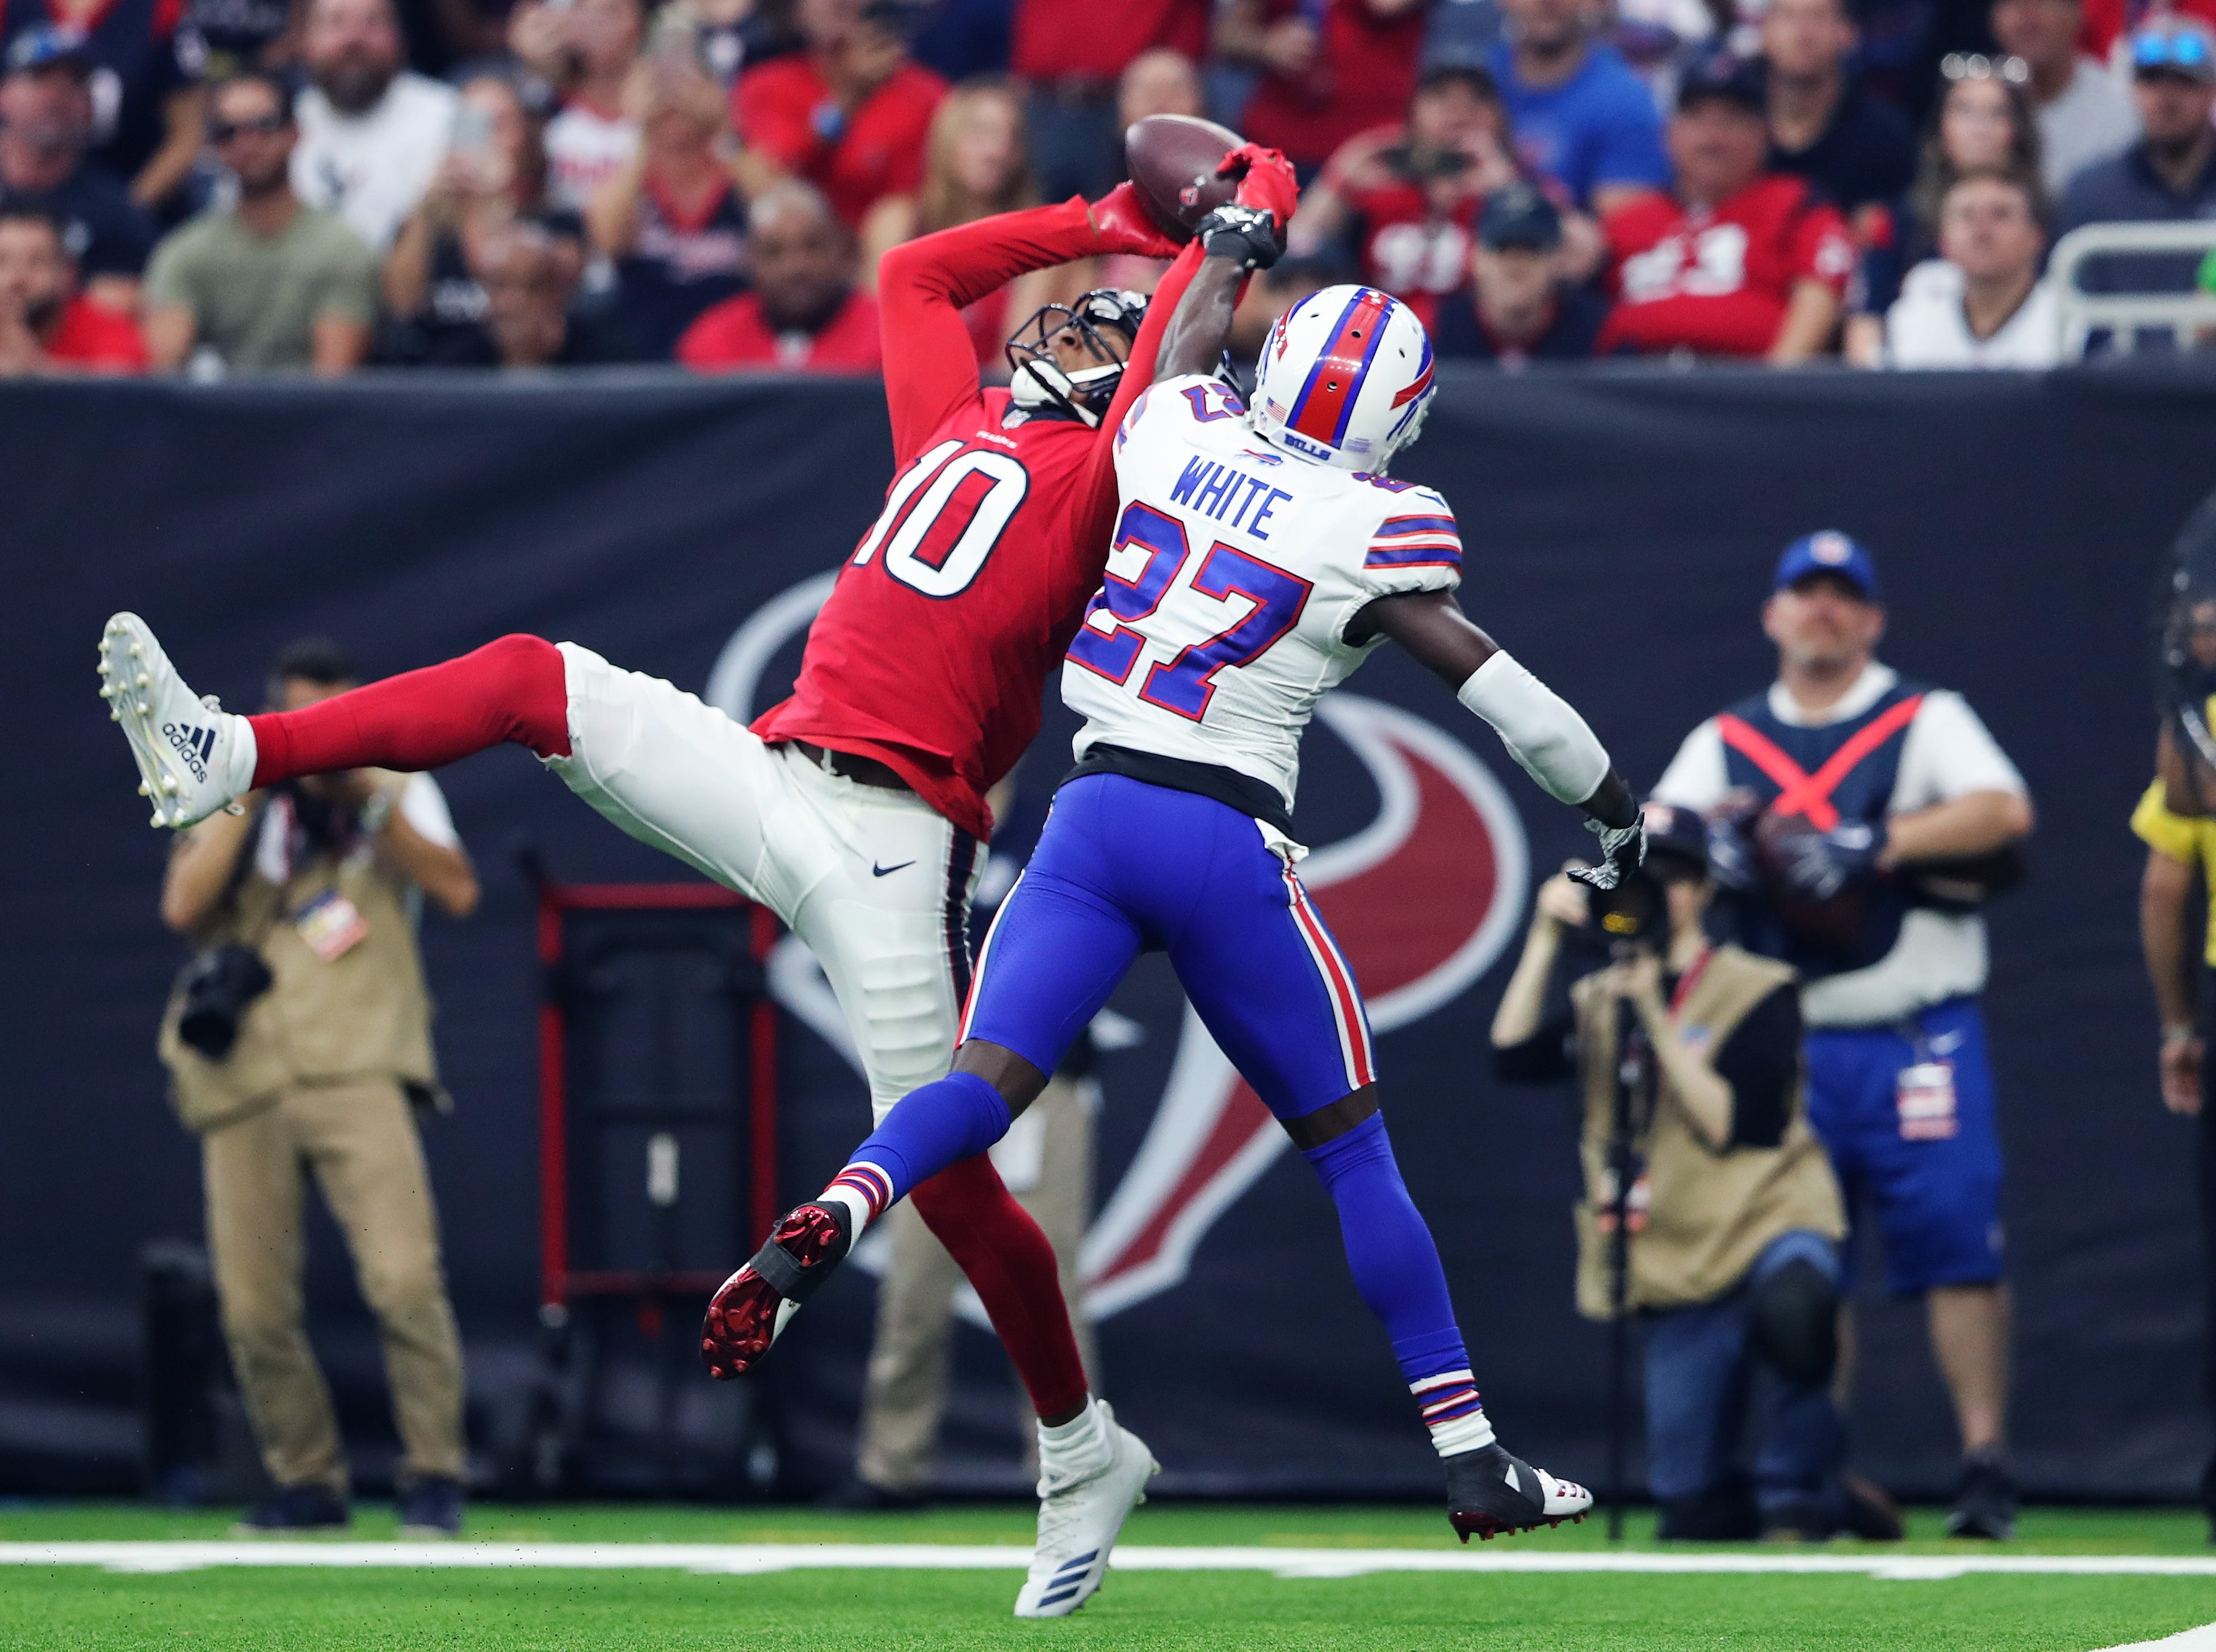 Oct 14, 2018; Houston, TX, USA; Houston Texans wide receiver DeAndre Hopkins (10) catches a touchdown  pass as Buffalo Bills cornerback Tre'Davious White (27) defends during the first quarter at NRG Stadium. Mandatory Credit: Kevin Jairaj-USA TODAY Sports